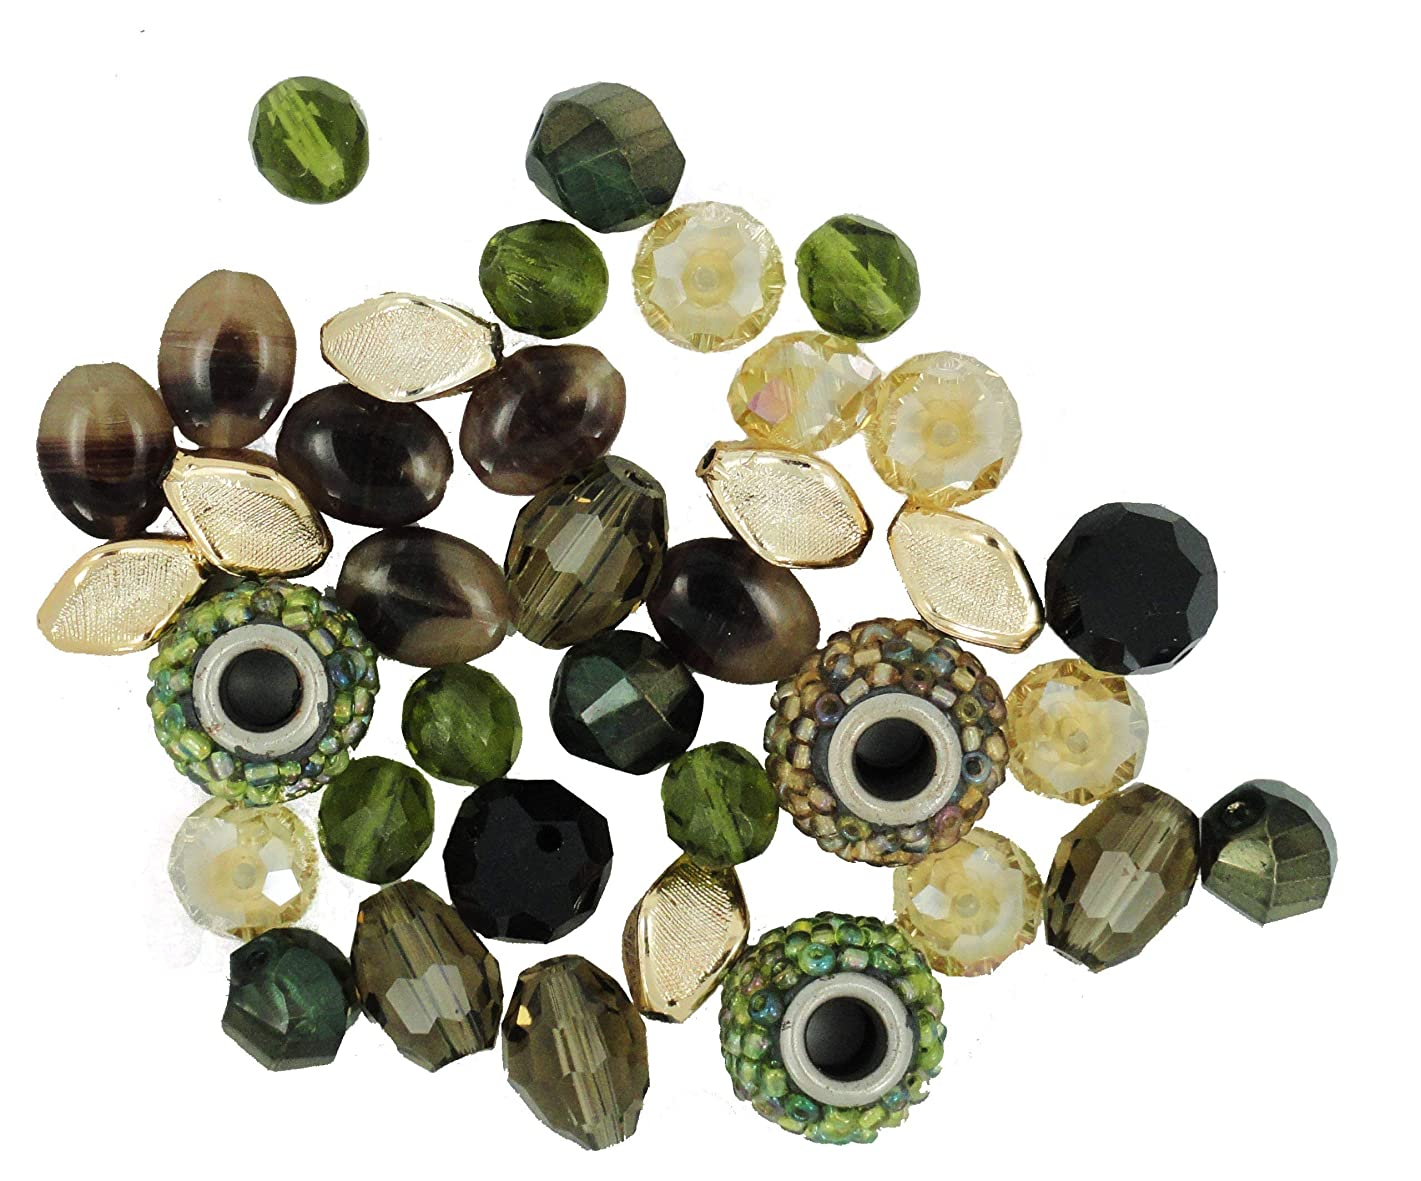 Jesse James Beads 5905 Design Elements Baroque, Green